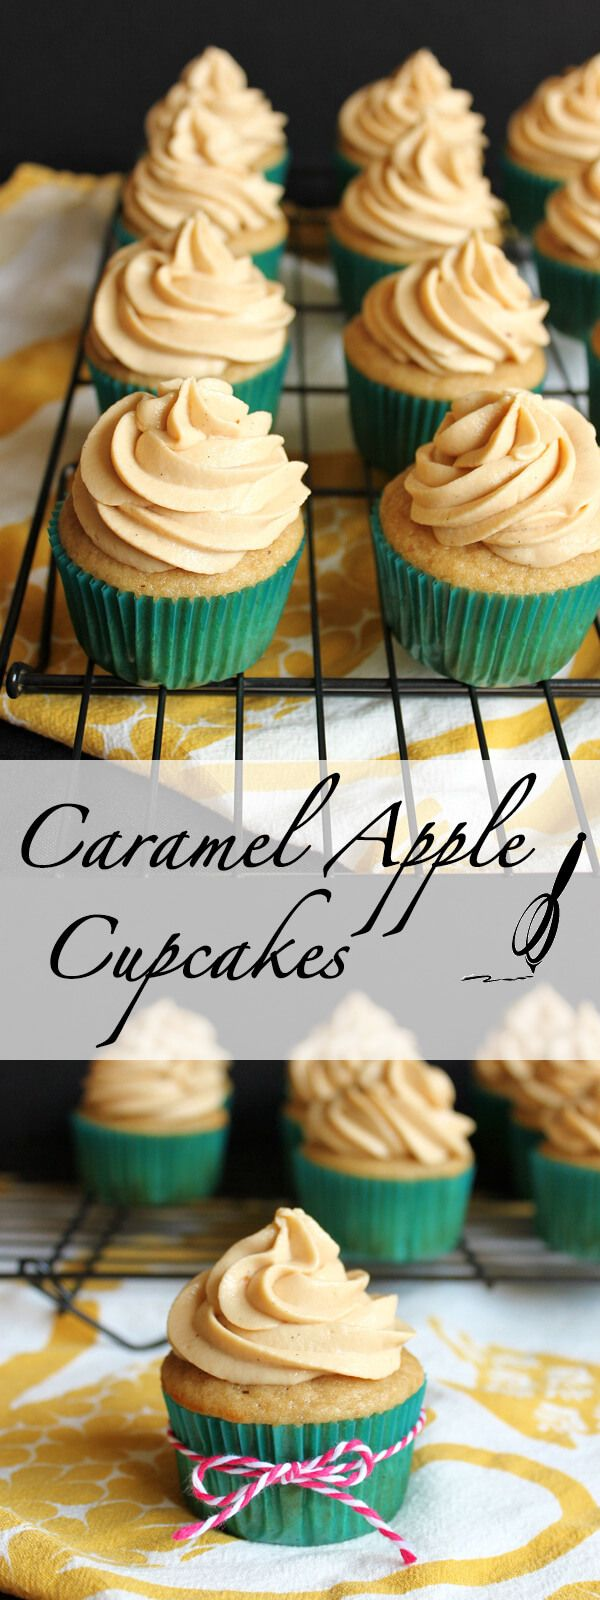 These Caramel Apple Cupcakes are the perfect treats for Autumn. The sticky homemade Dulce de Leche filling gives them an extra special touch. | wildwildwhisk.com